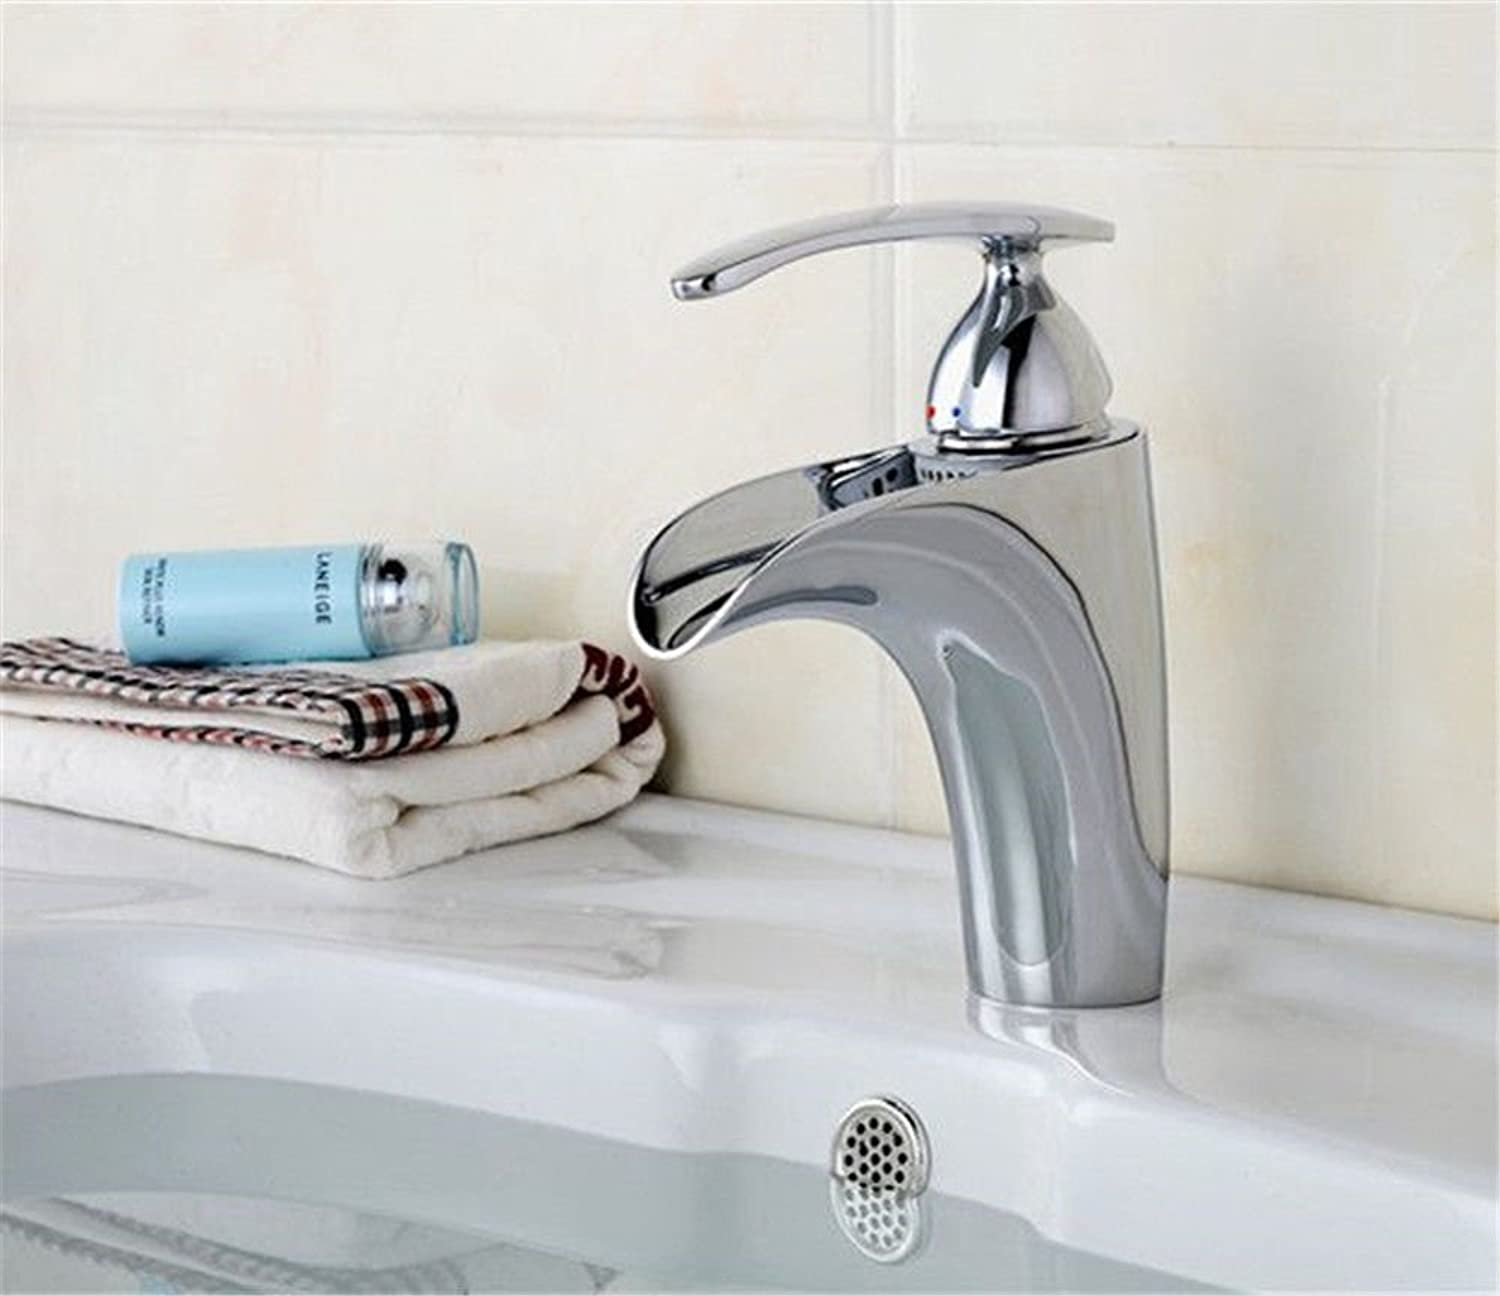 Lpophy Bathroom Sink Mixer Taps Faucet Bath Waterfall Cold and Hot Water Tap for Washroom Bathroom and Kitchen Electroplating Waterfall Hot and Cold